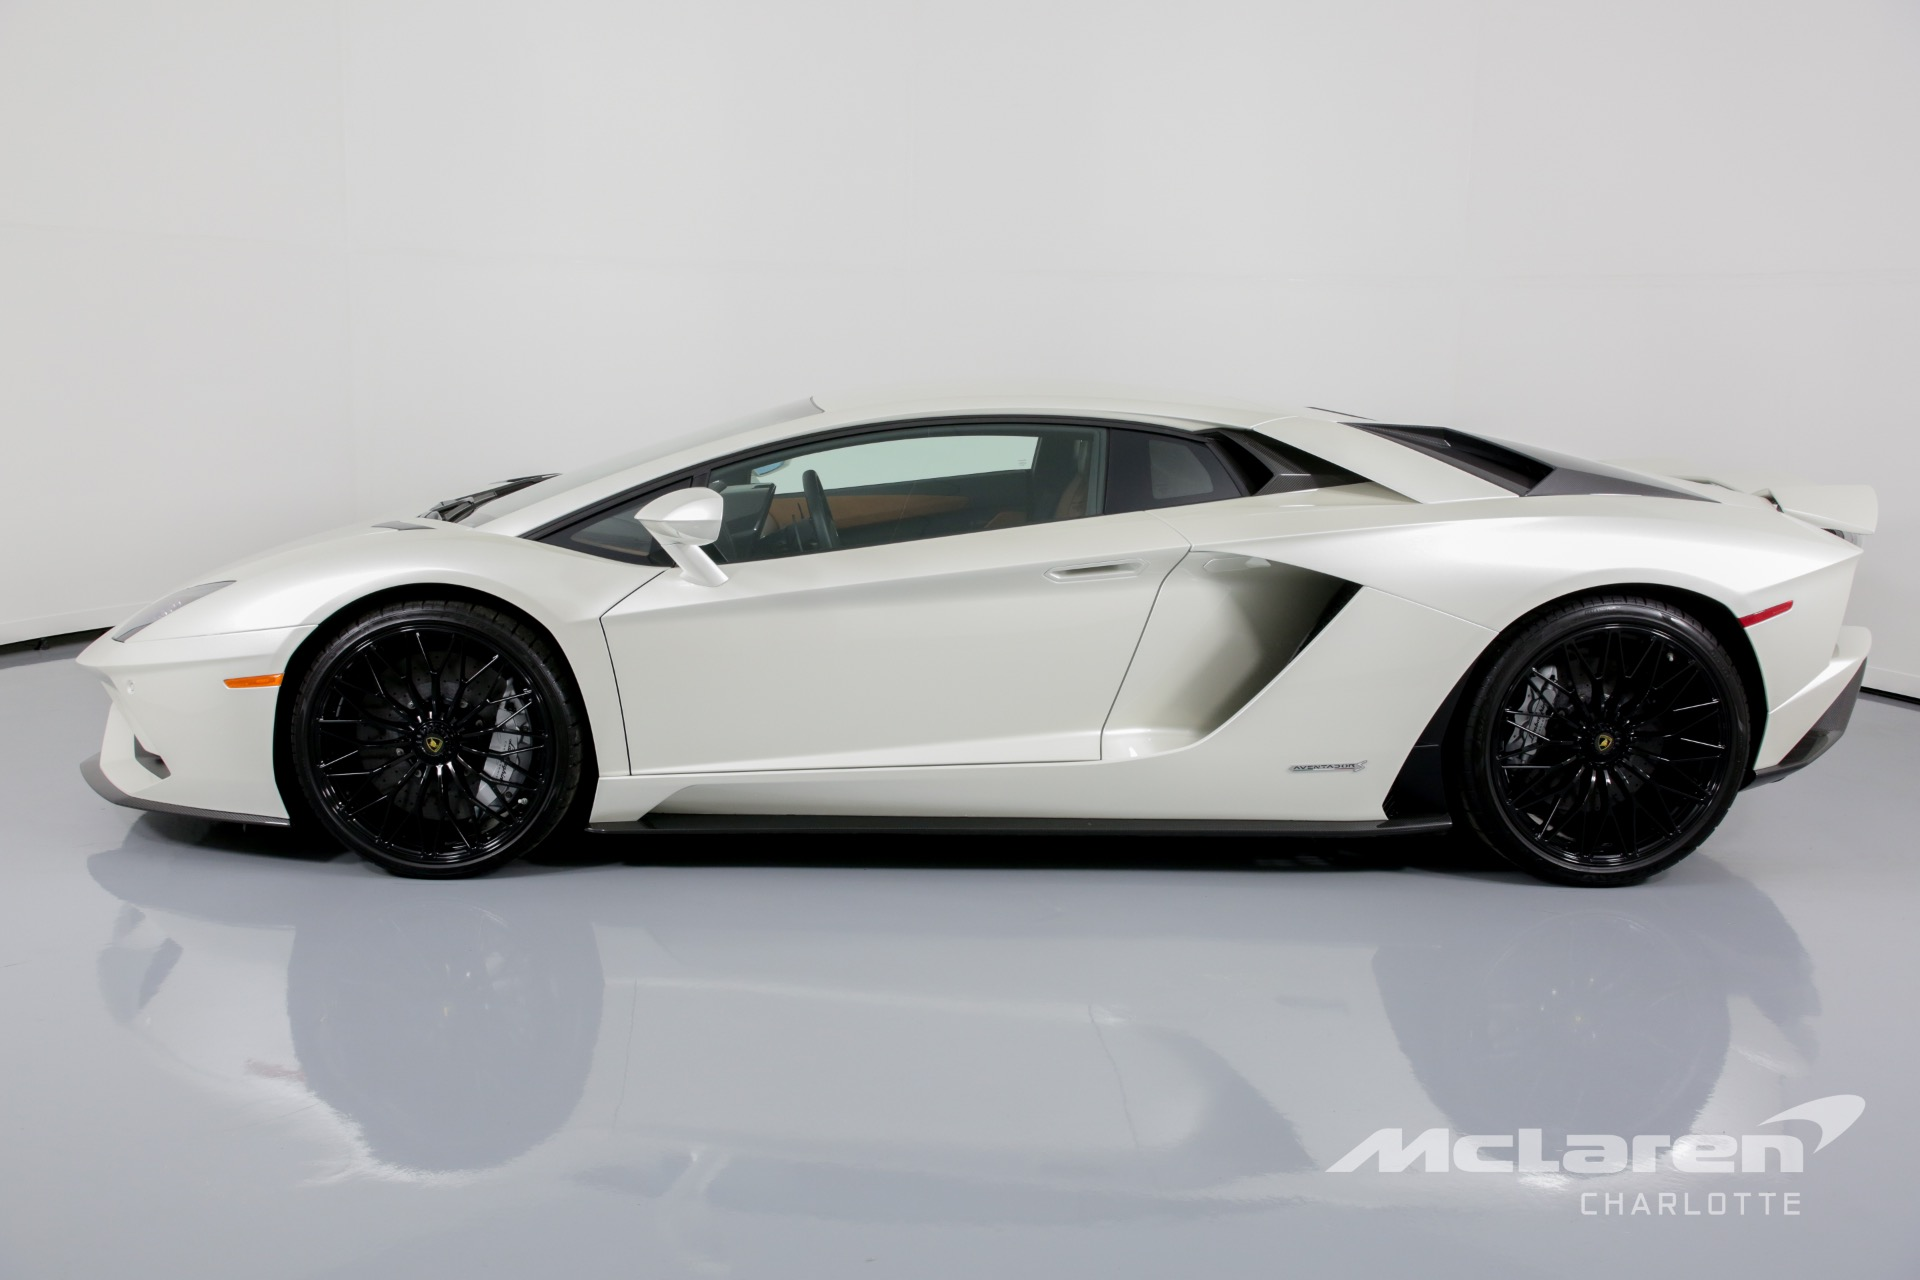 Used 2018 Lamborghini Aventador LP 740-4 S For Sale